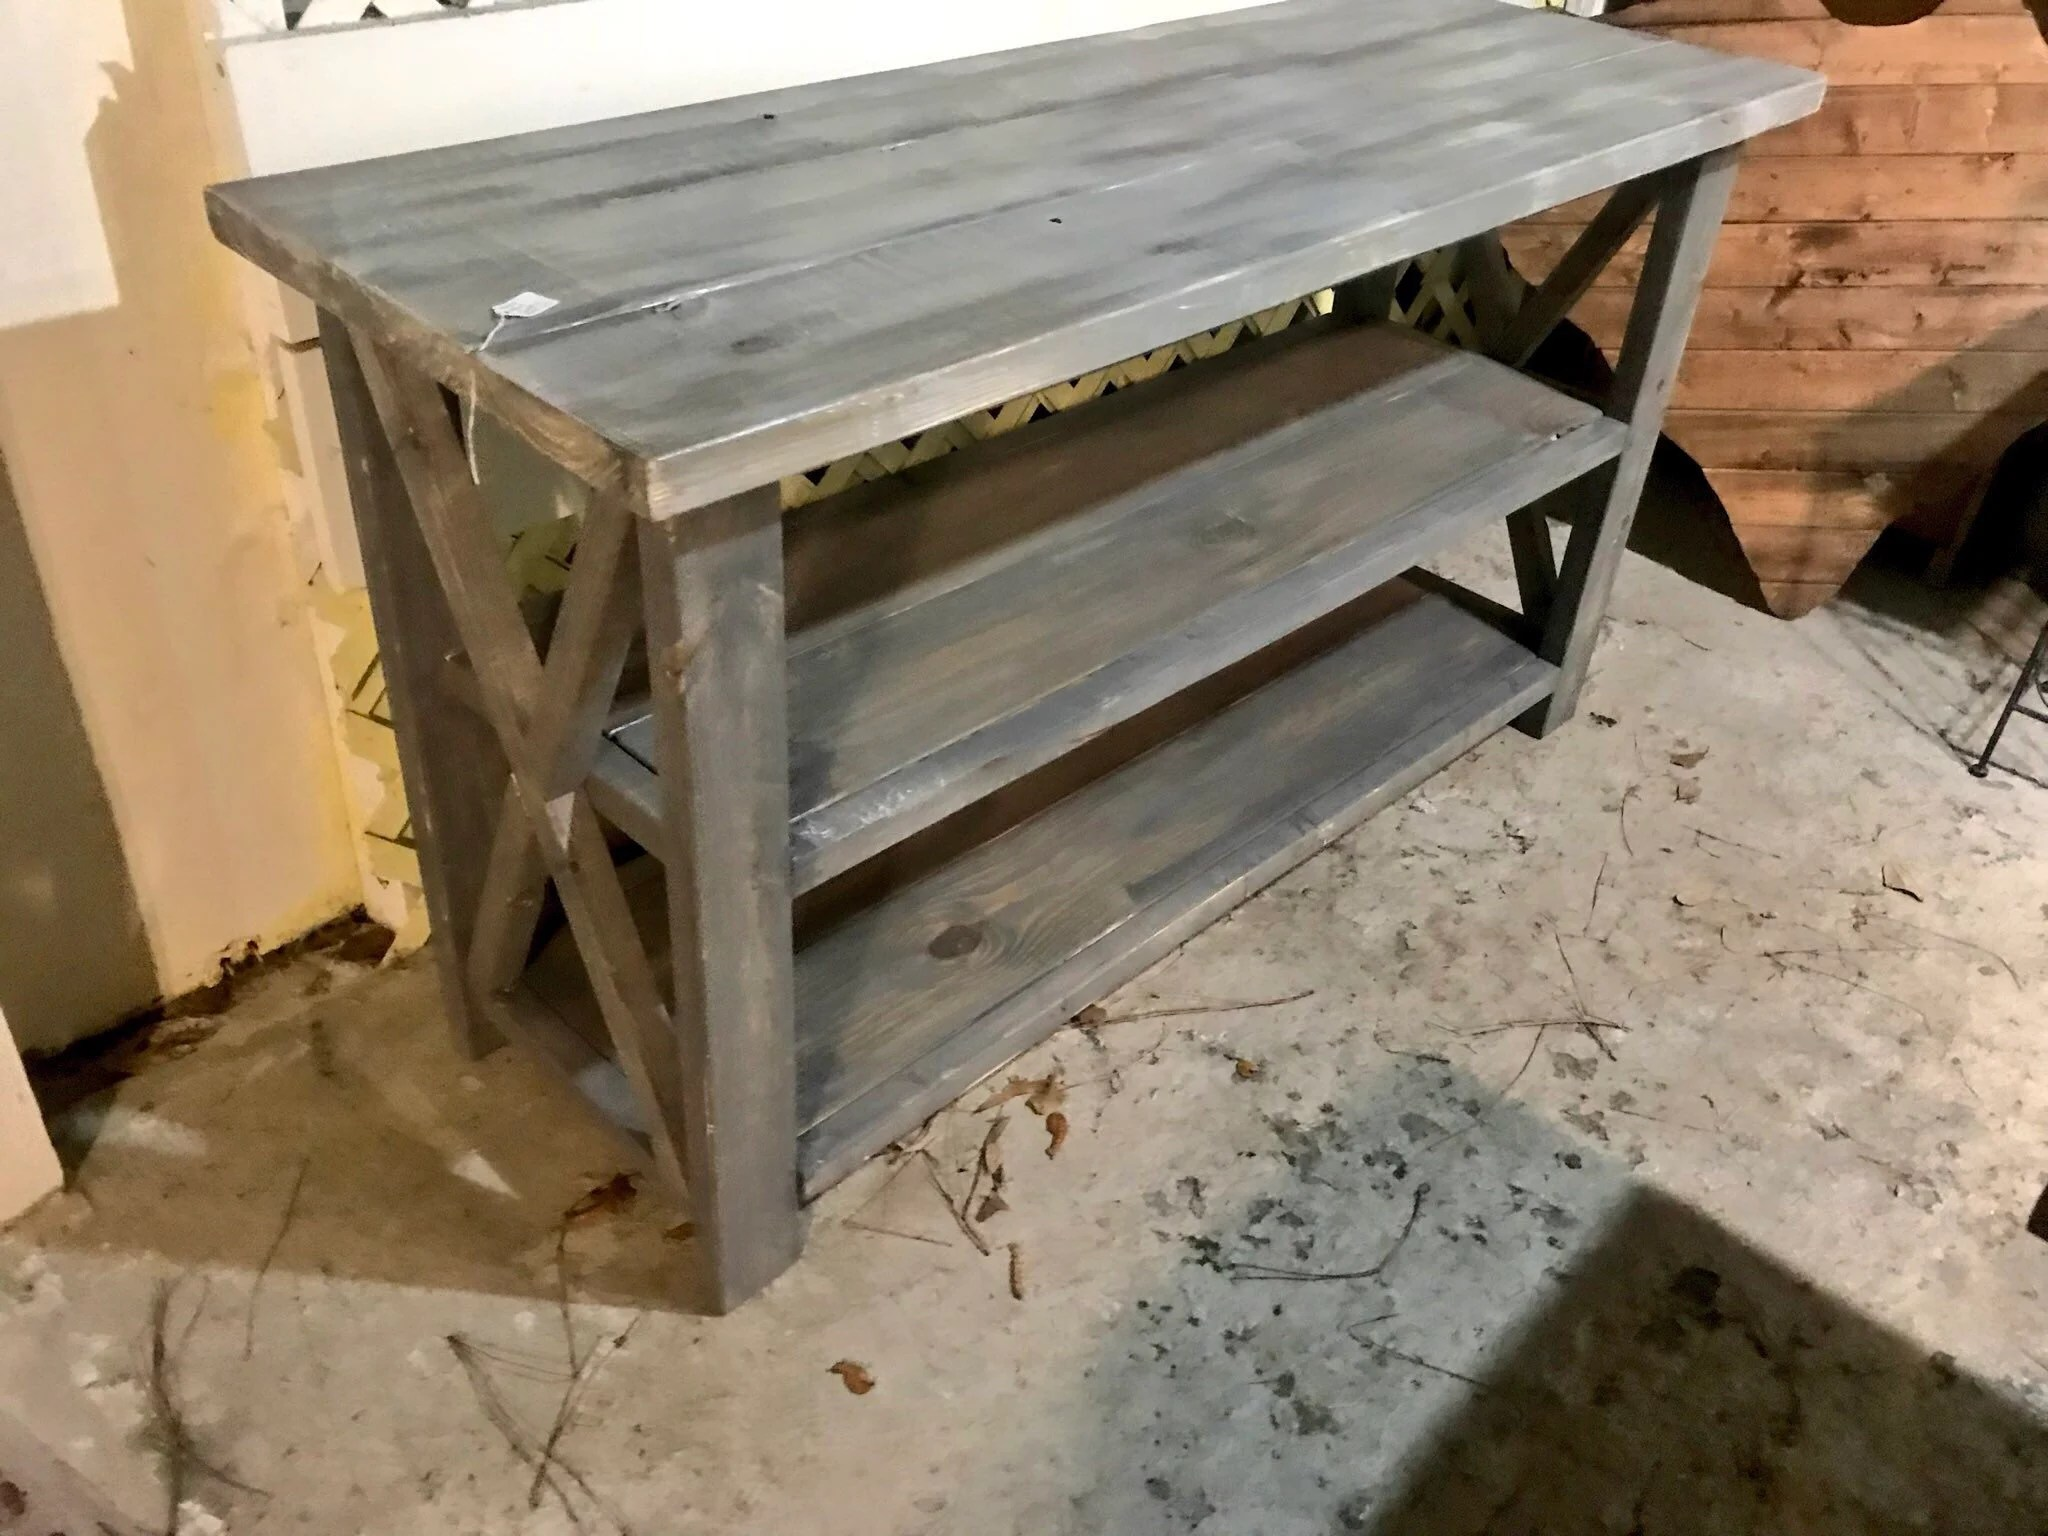 Rustic Wooden Buffet Table Rustic Console Table Farmhouse Buffet Table White Wash With Gray Base And White Wash Top